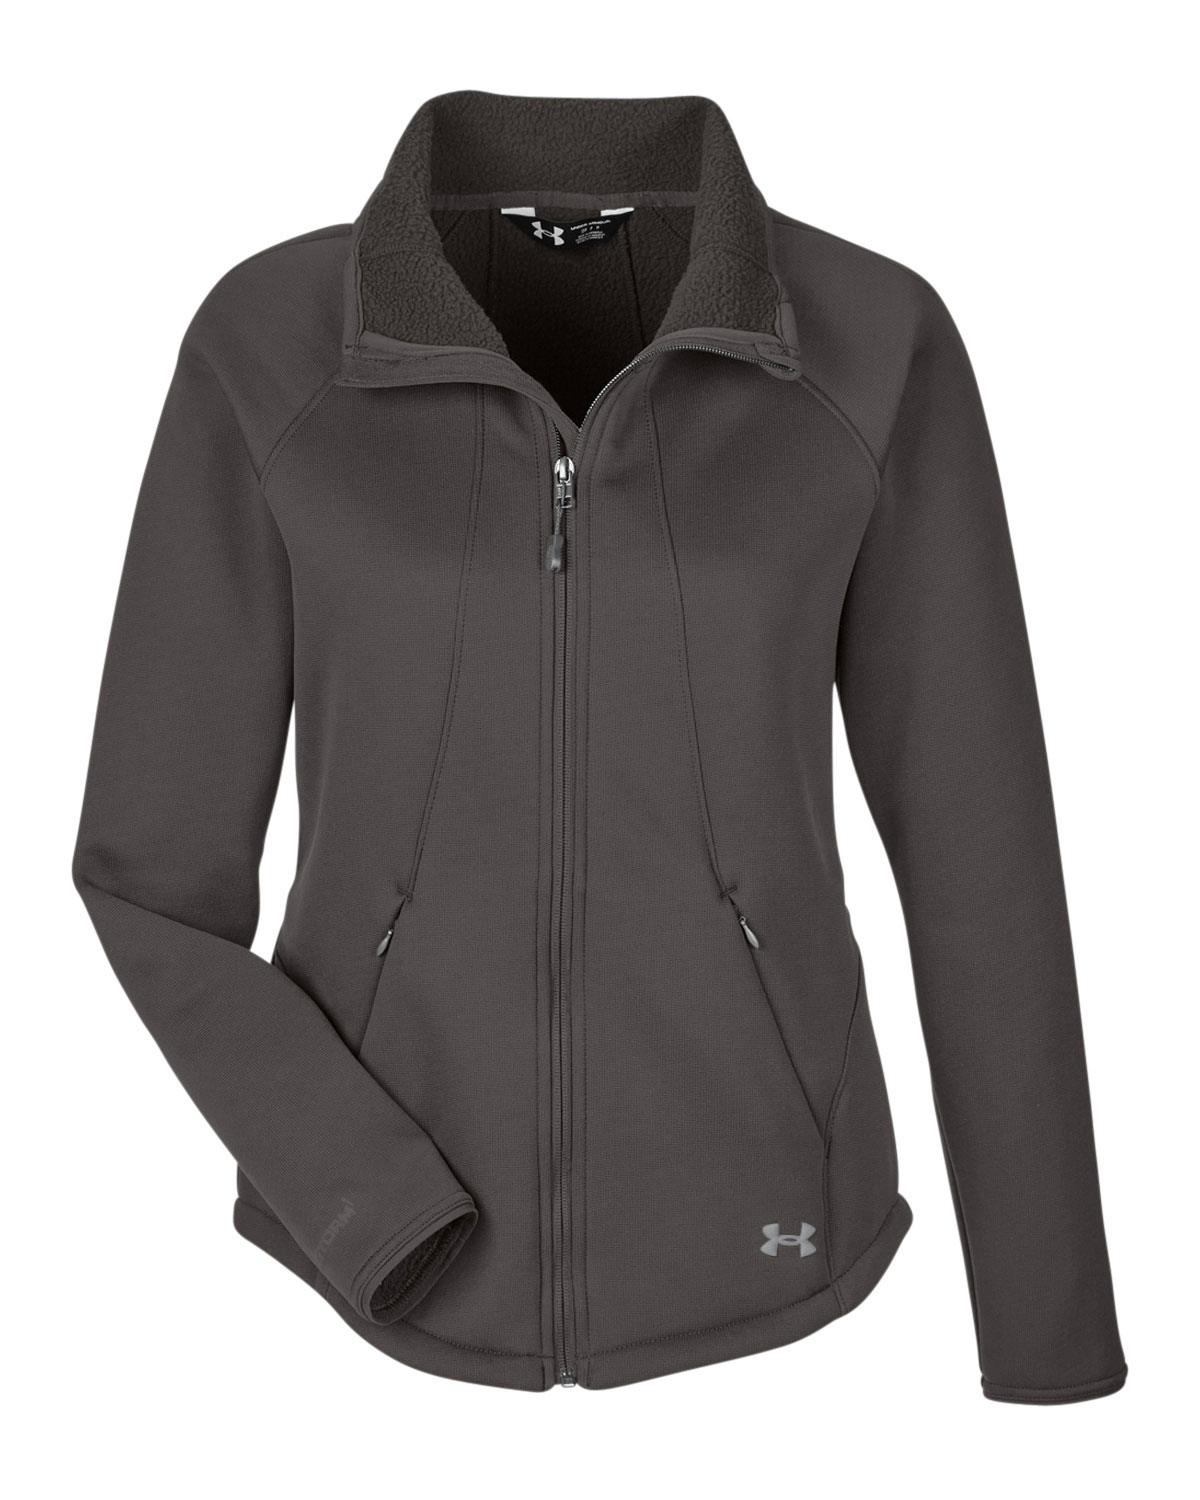 Ladies Under Armour Extreme Coldgear Jacket